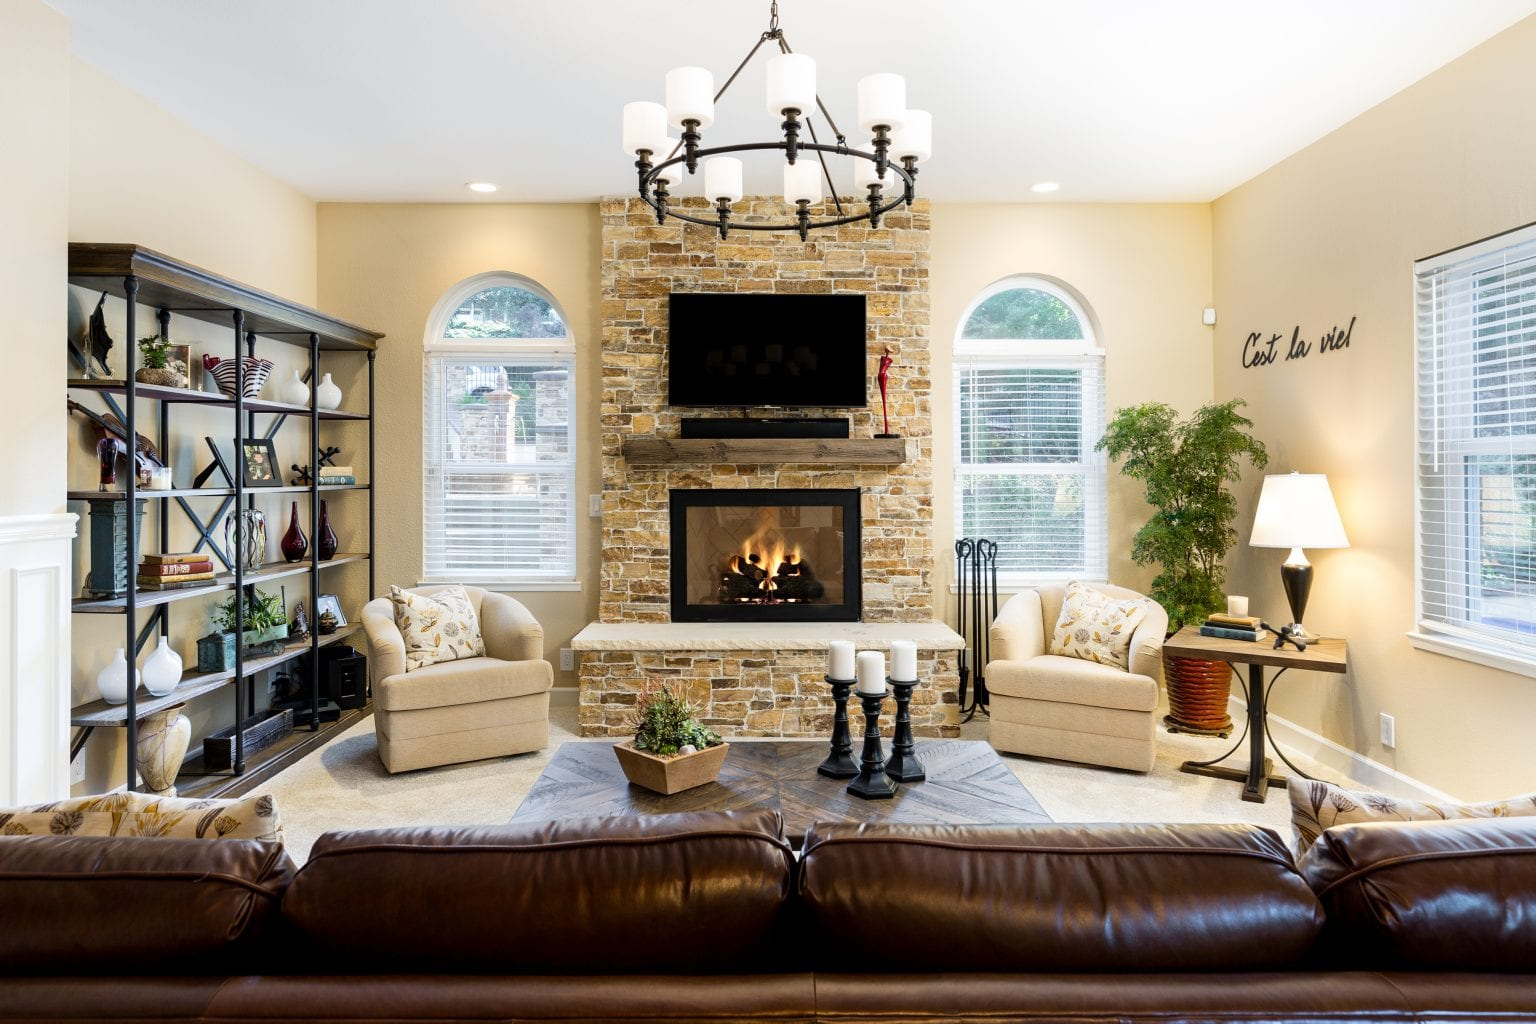 Living space with TV mounted to stone fireplace